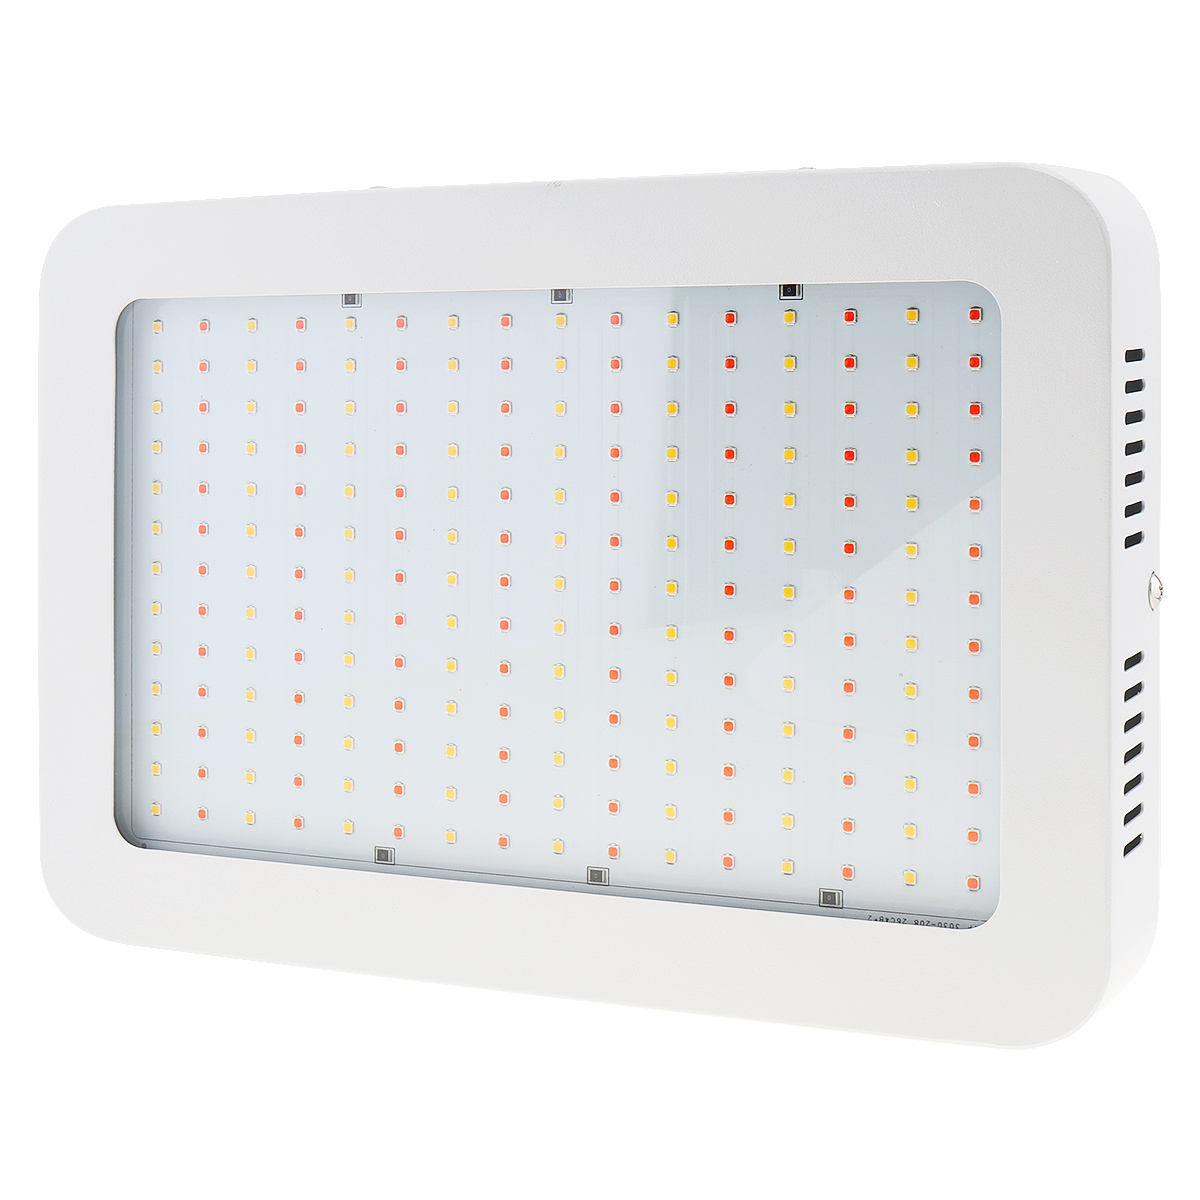 1000W 280pcs SMD3030 LED Plant Grow Light Full Spectrum Sunlike with ON/Off Double Switch for Succulent Plants Flowers Greenhouse Vegetable Hydroponics